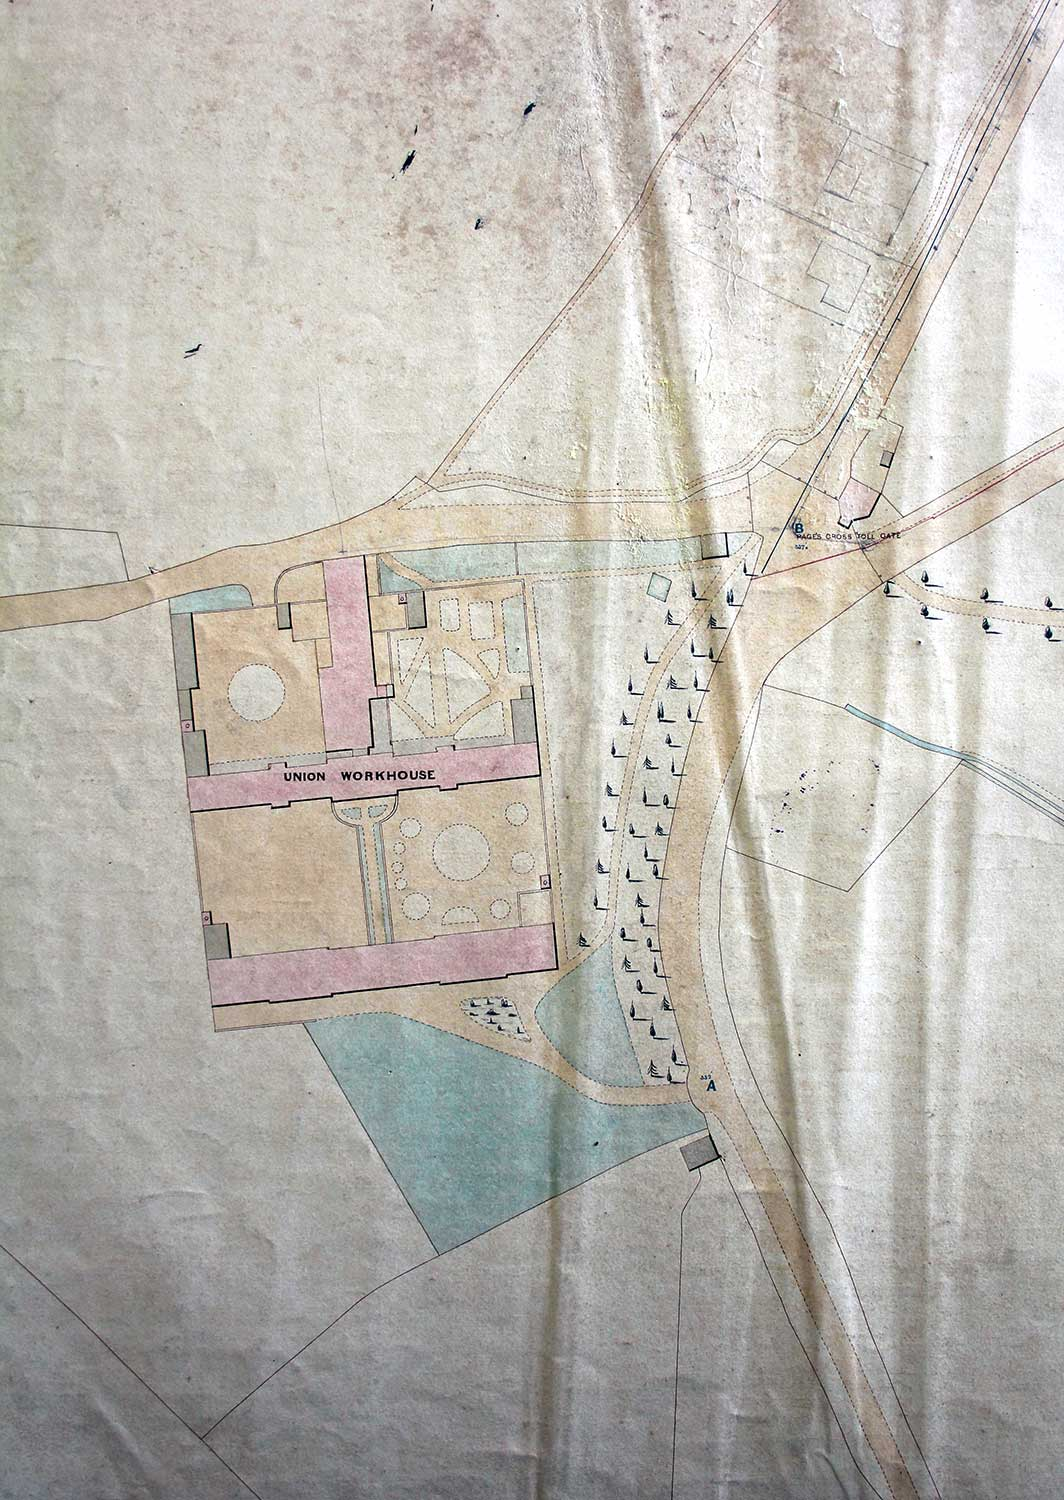 Workhouse Map from 1853.